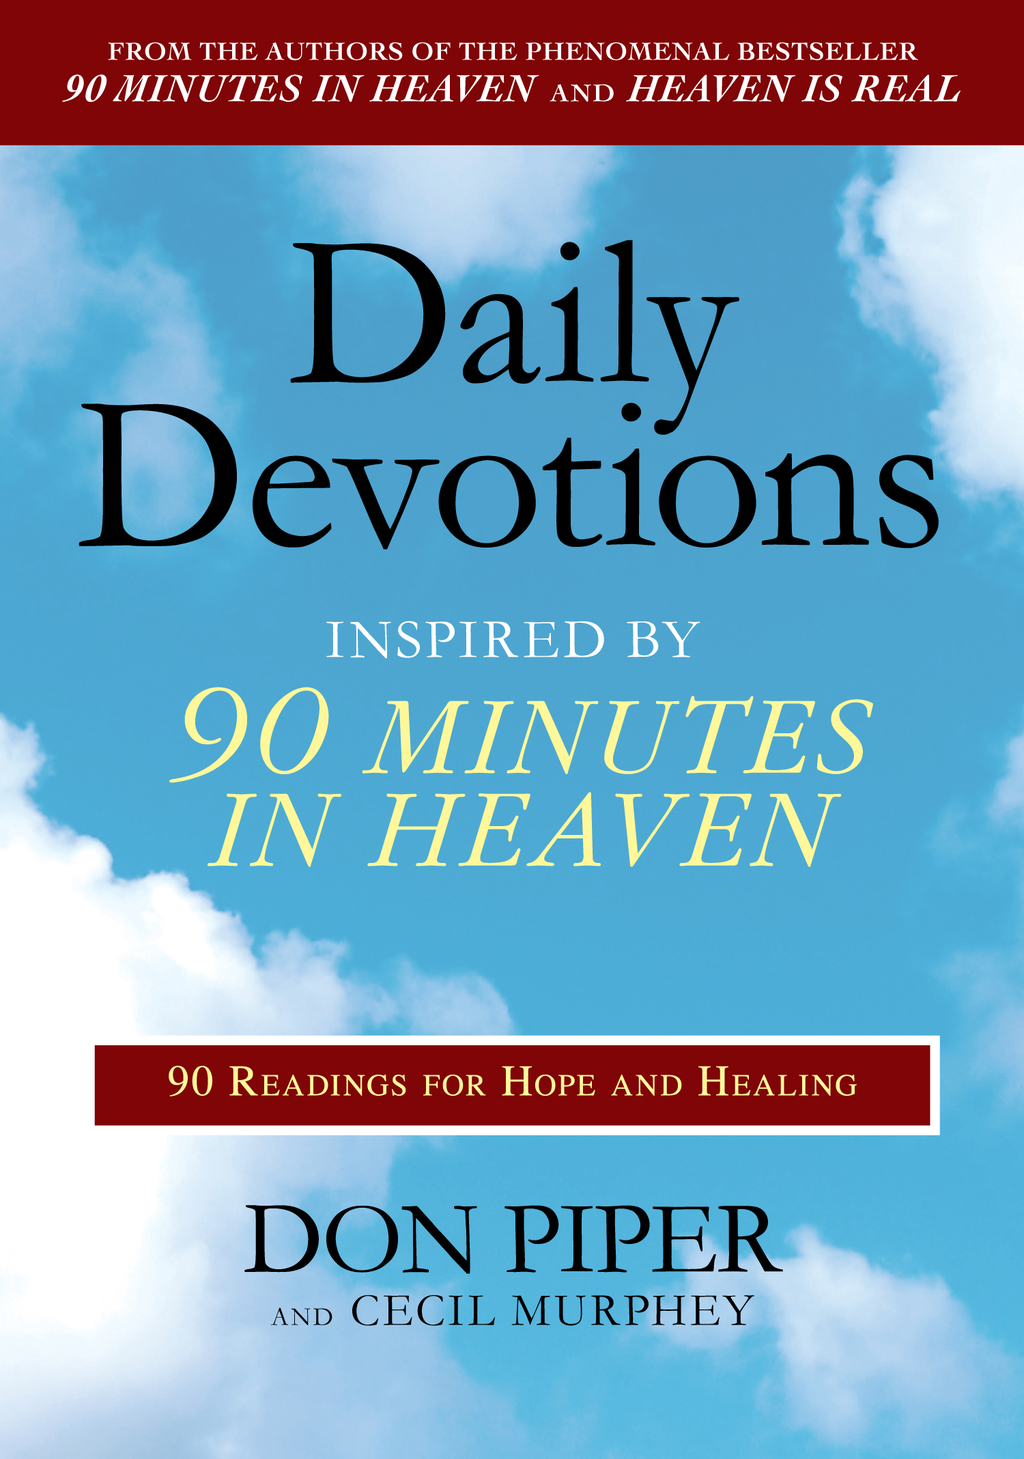 Daily Devotions Inspired by 90 Minutes in Heaven By: Cecil Murphey,Don Piper